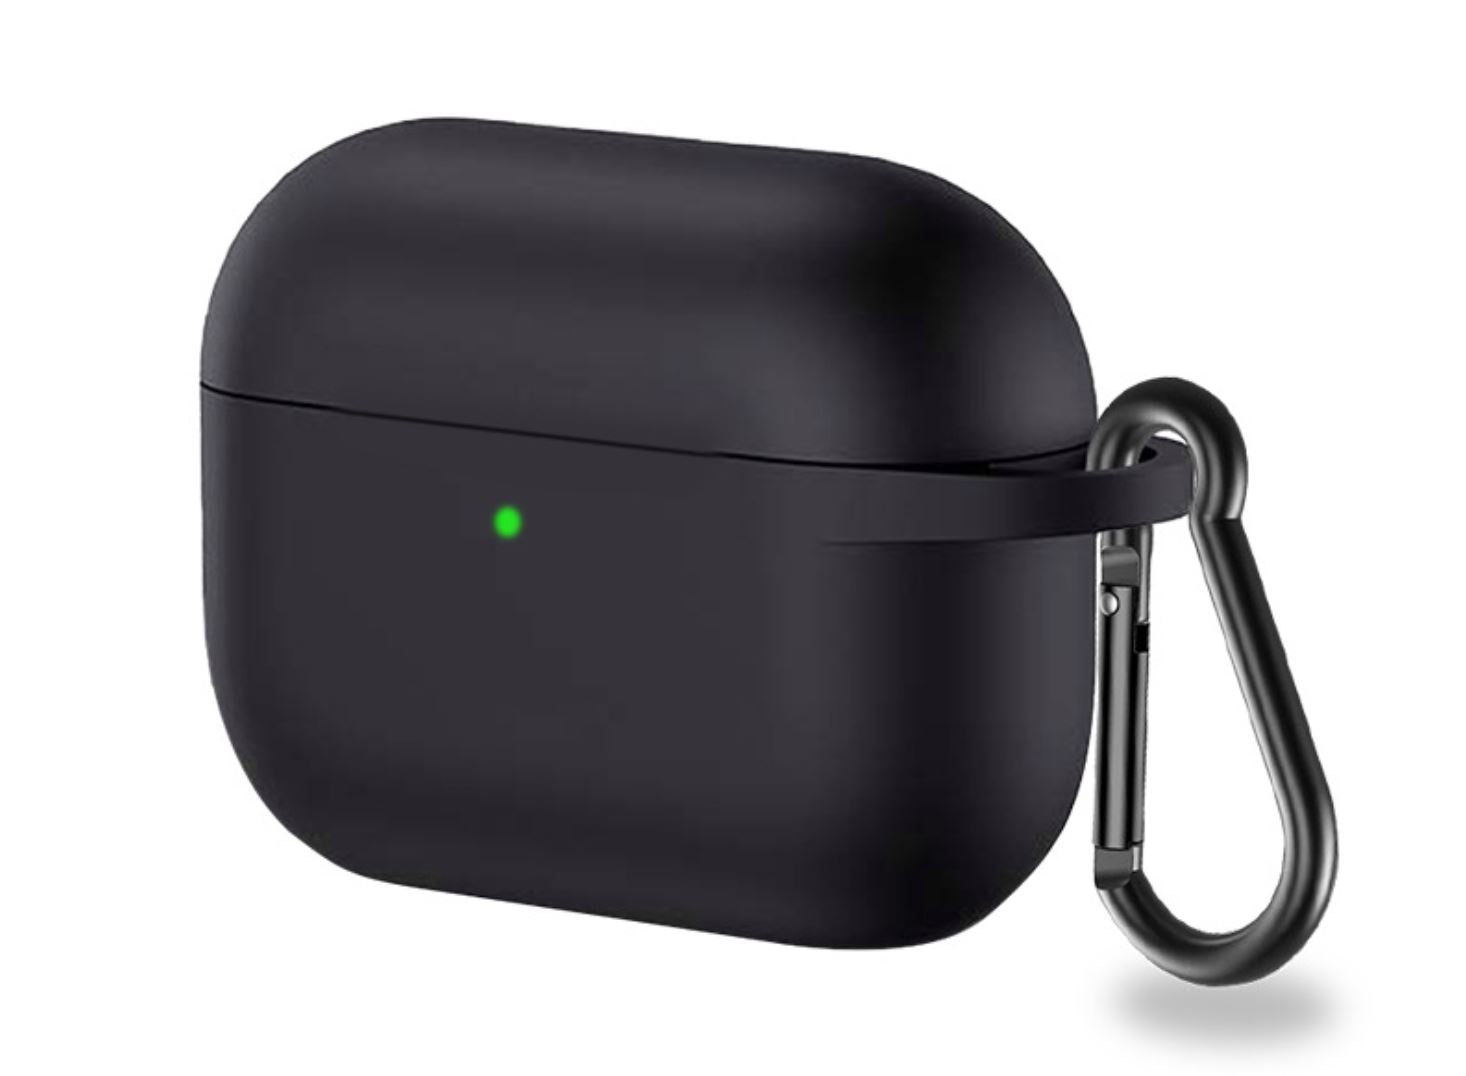 AirPods Pro Cover & its Anti-Lost Buckle 200001619 digitalnomadcorner Black